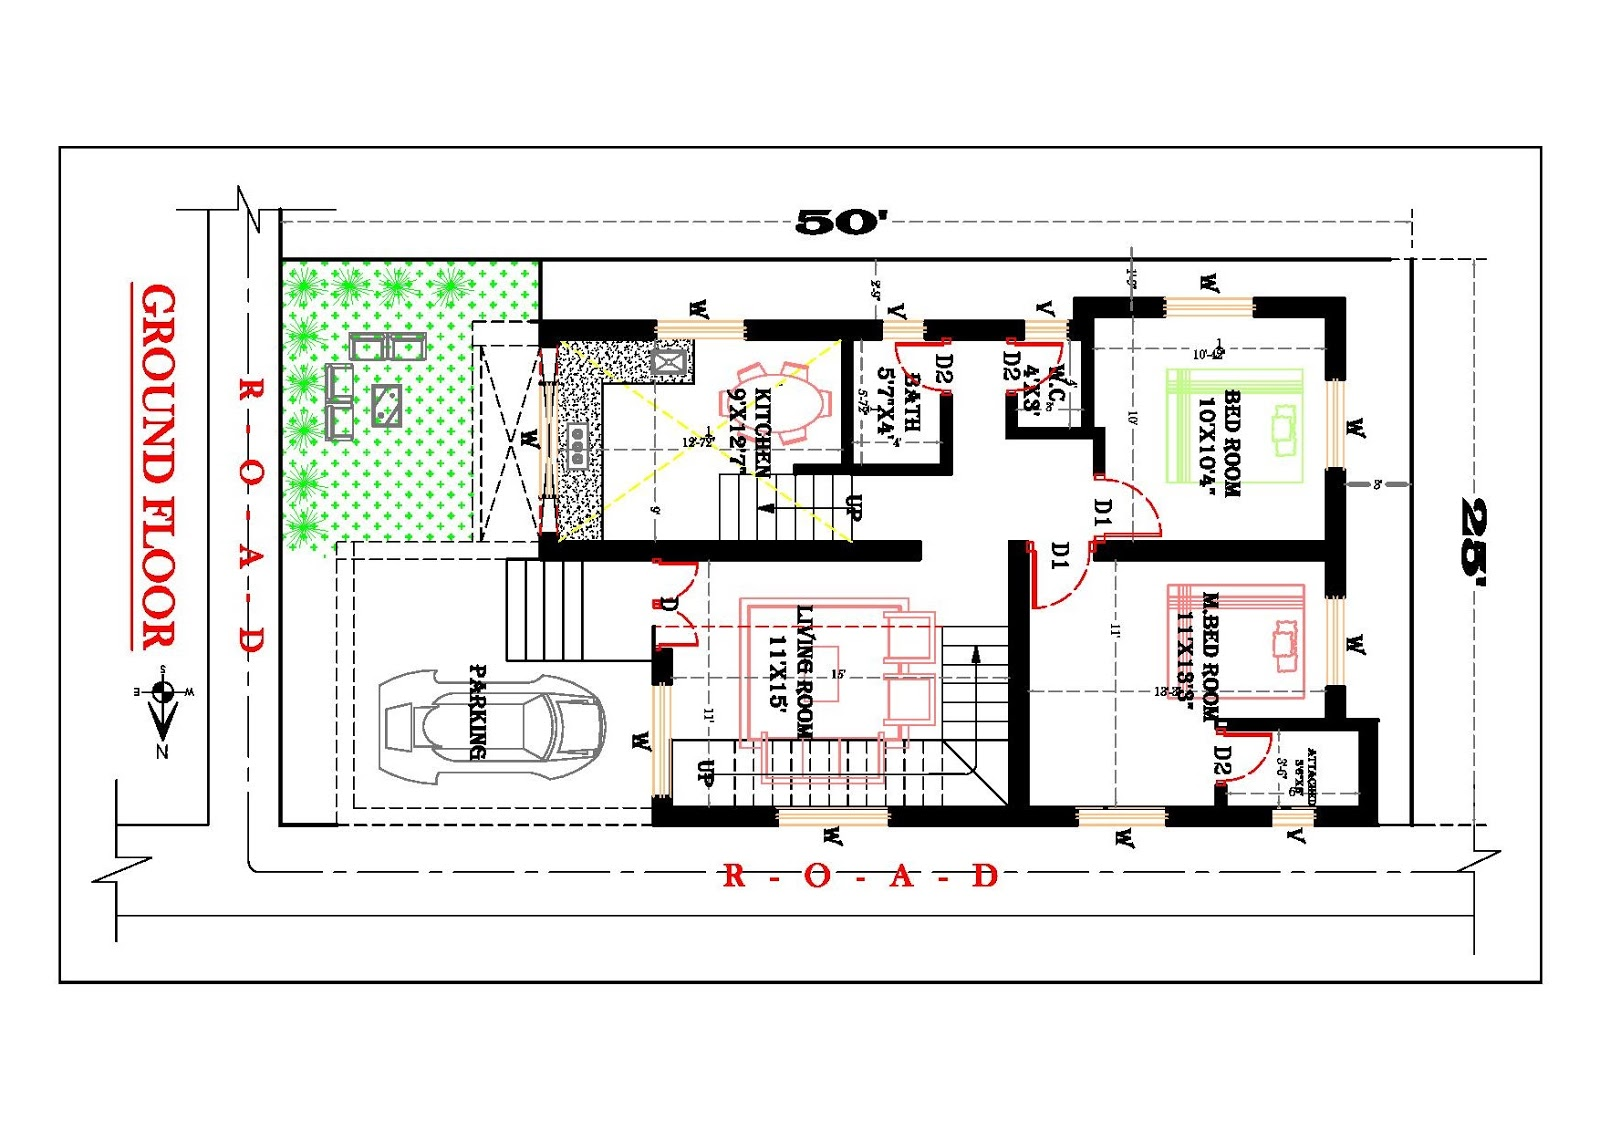 25x50 feet house plan for 25x50 house plan